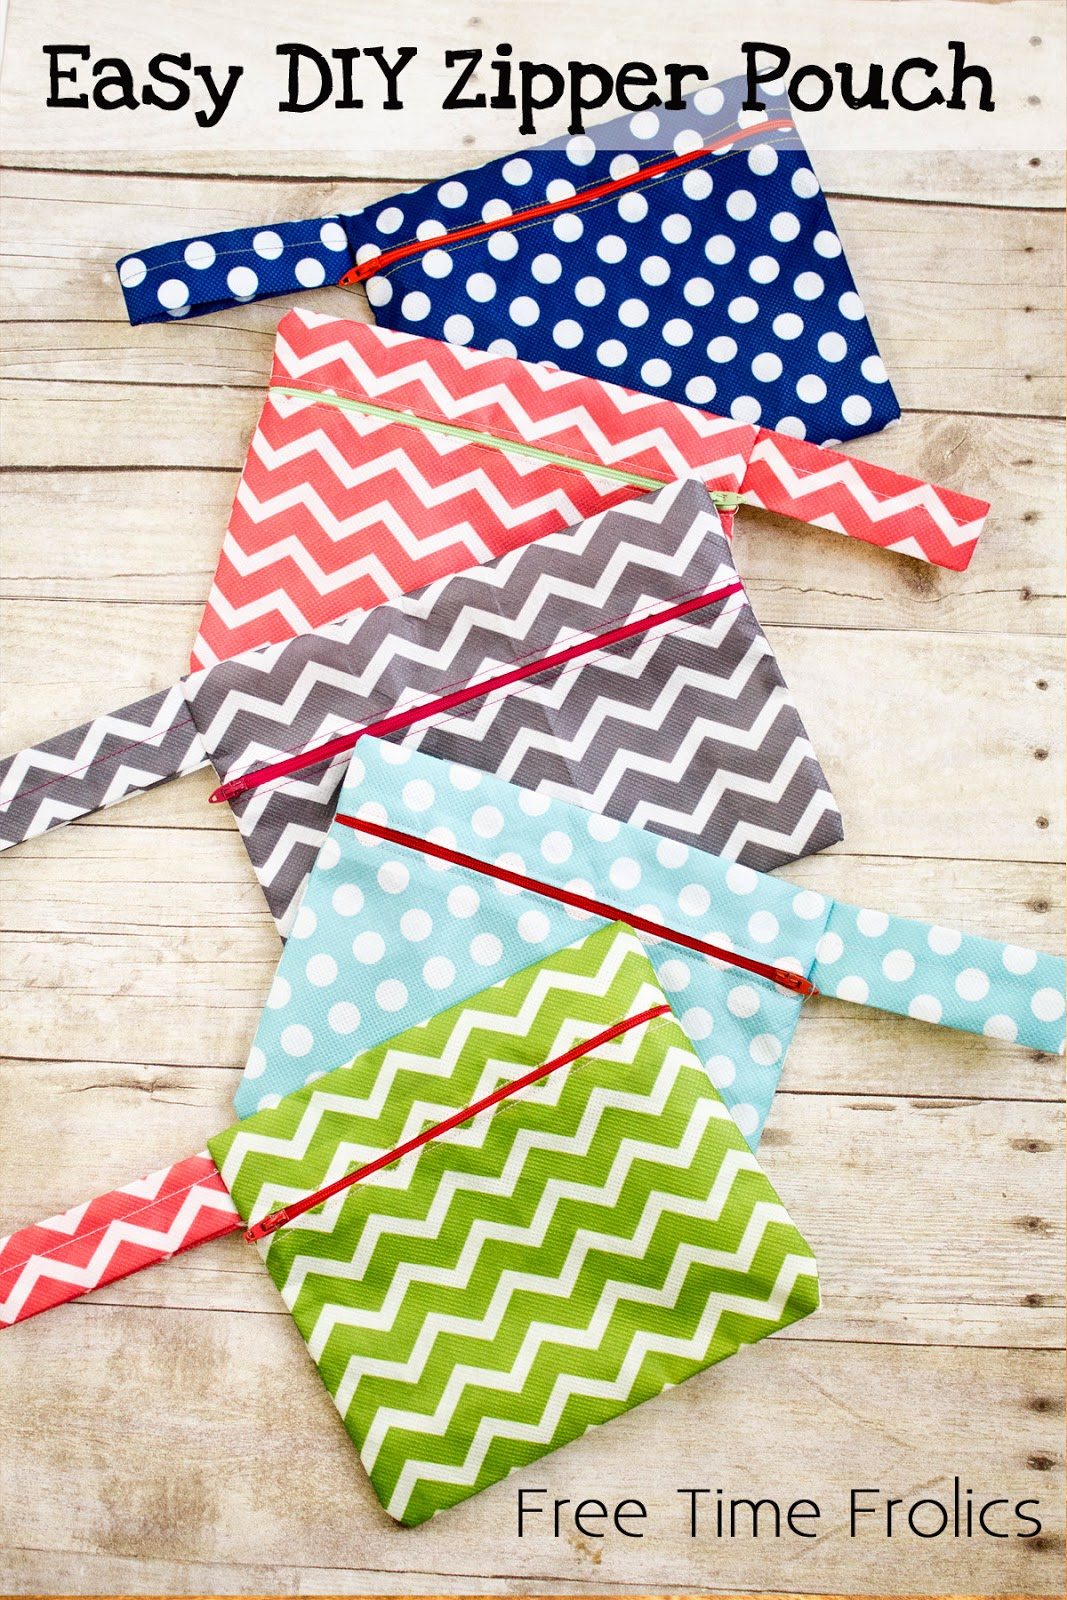 Easy DIY Zipper Pouch Mabey She Made It